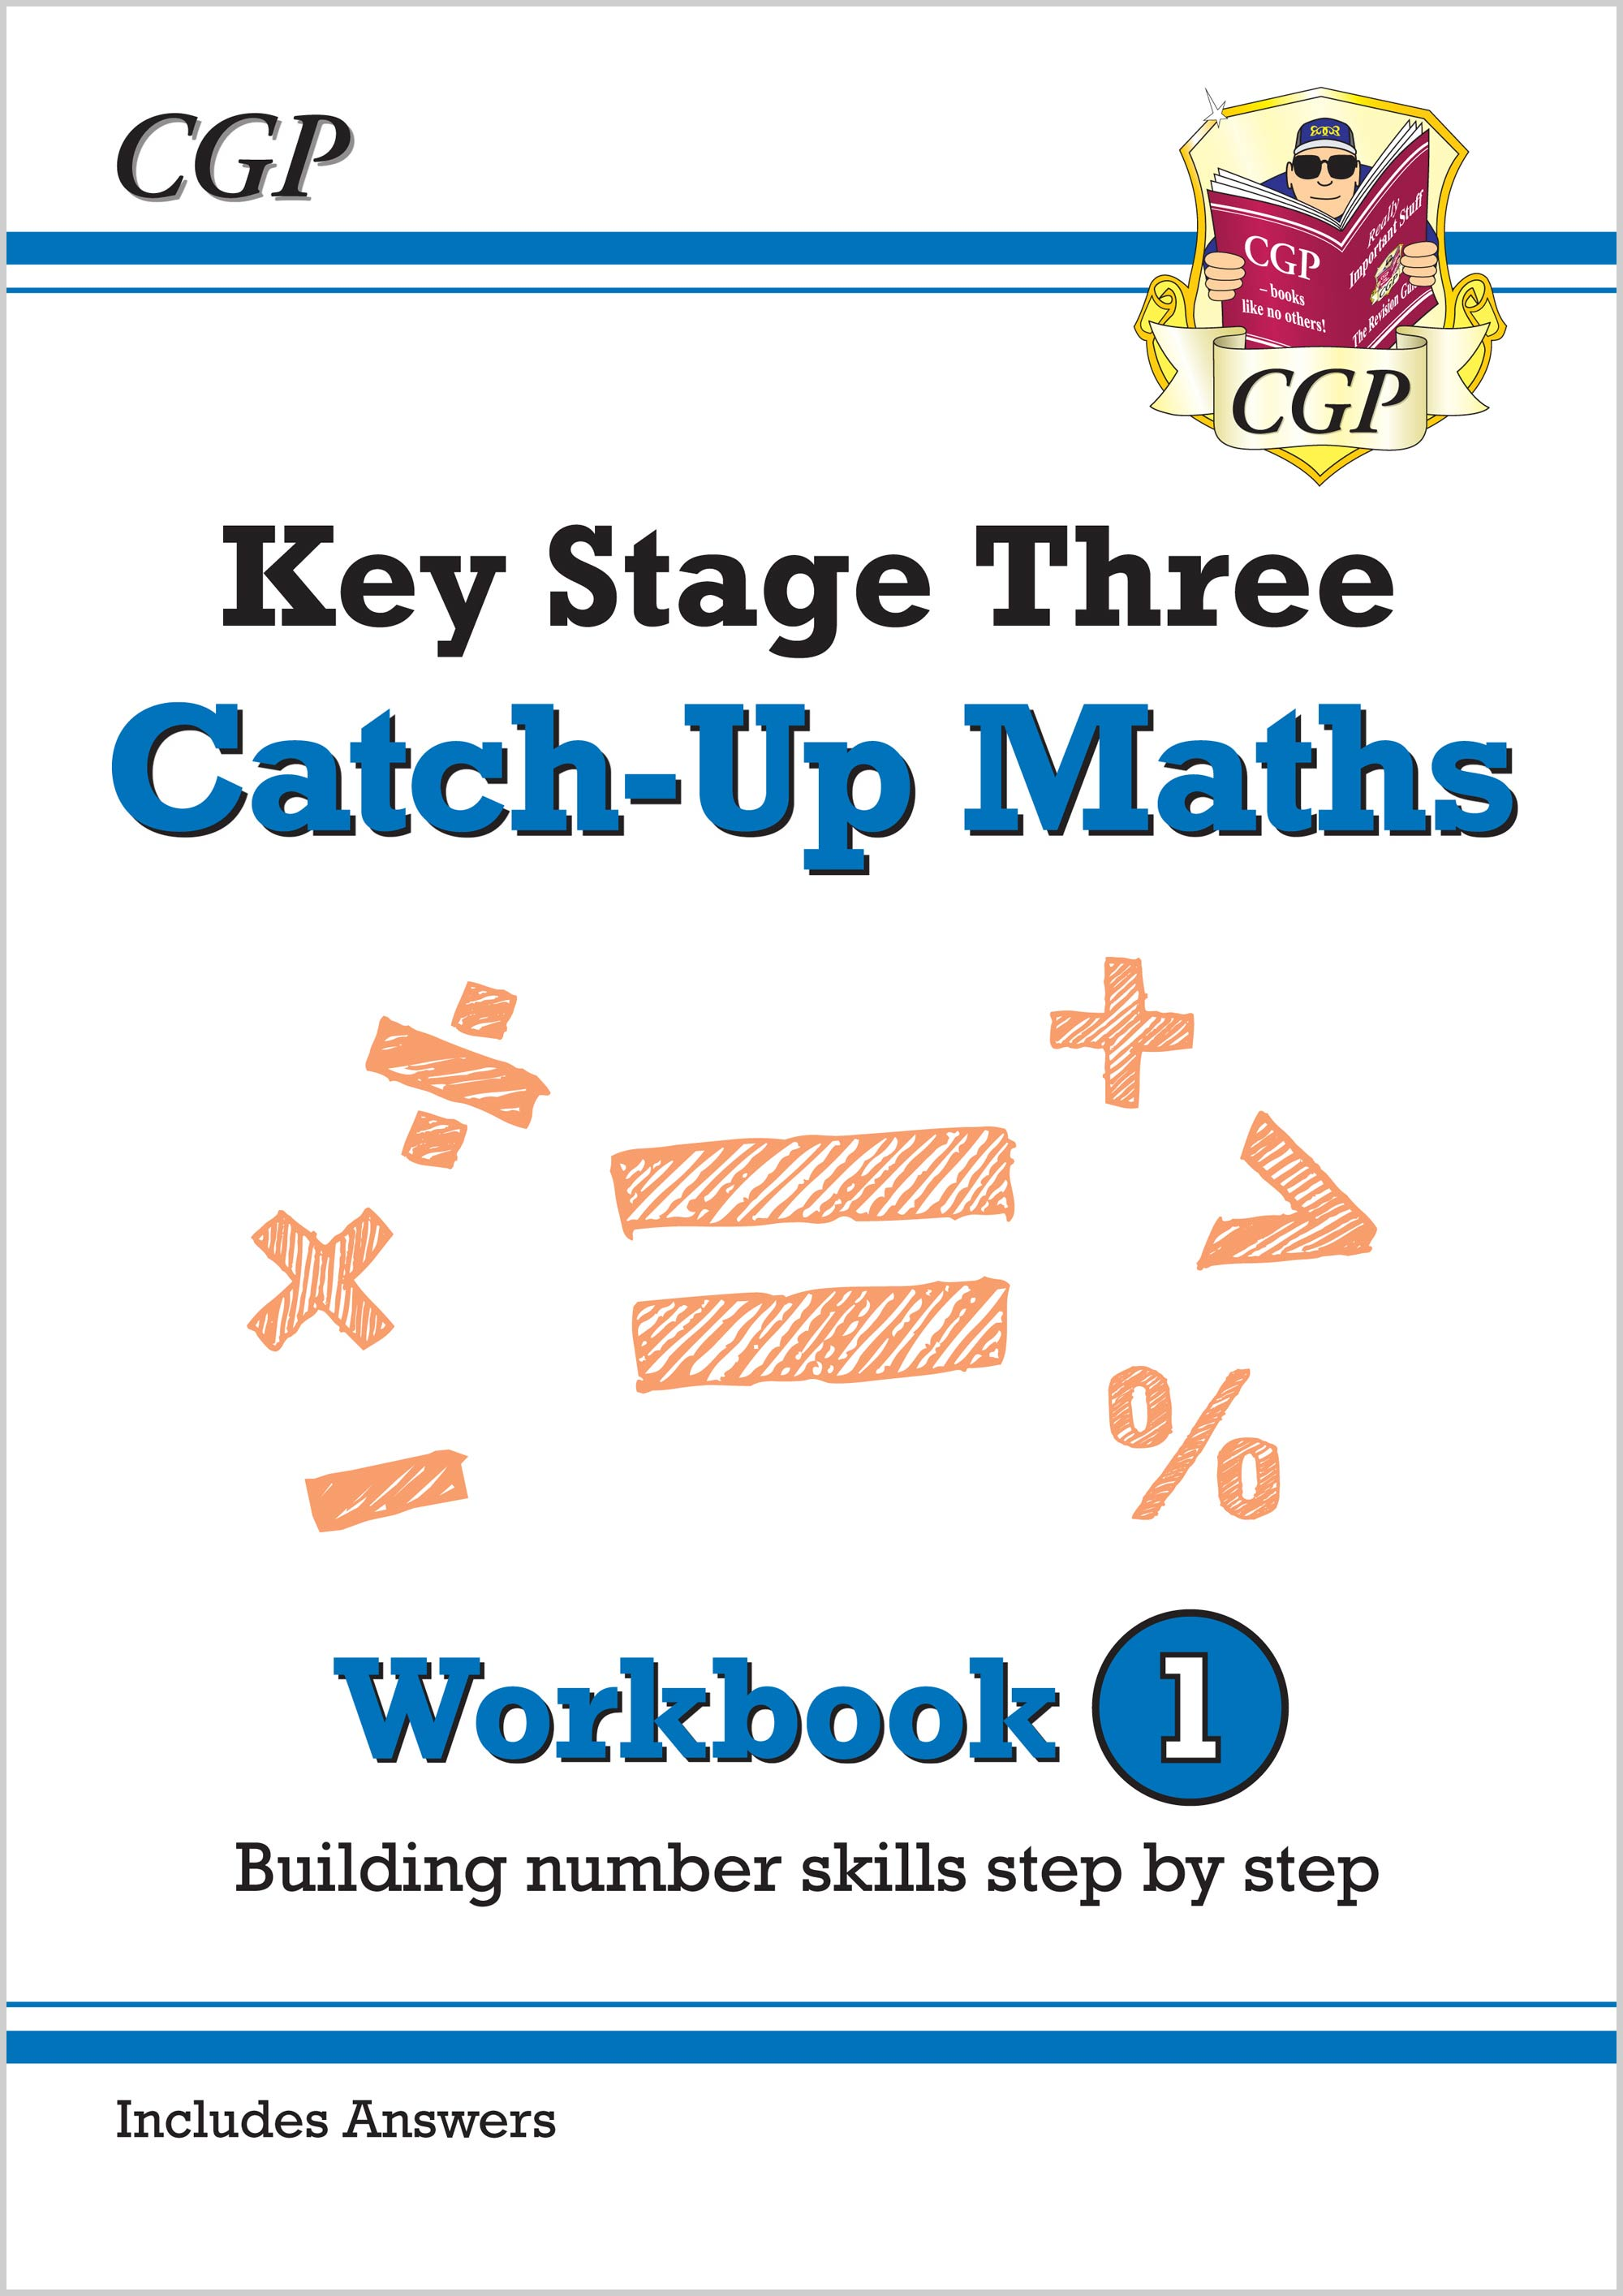 MBNW131 - KS3 Maths Catch-Up Workbook 1 (with Answers)